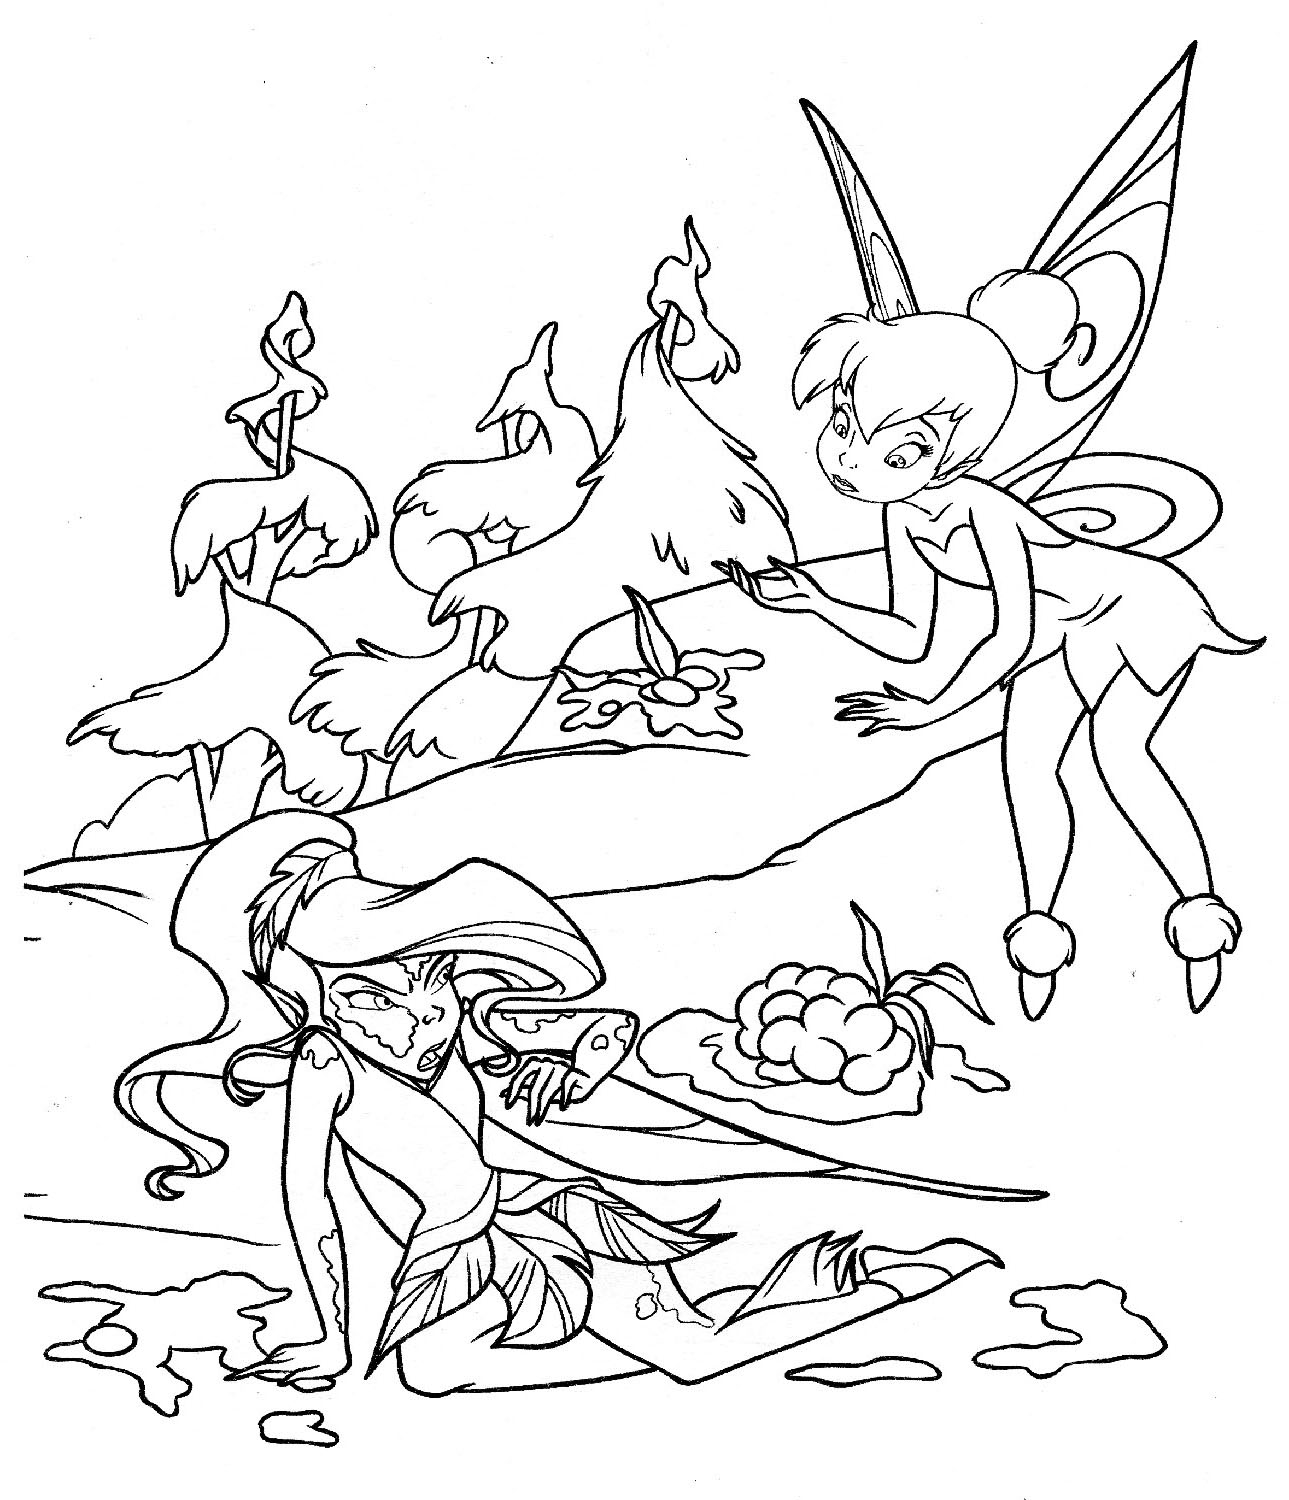 1289x1500 Free Printable Tinkerbell Coloring Pages For Kids